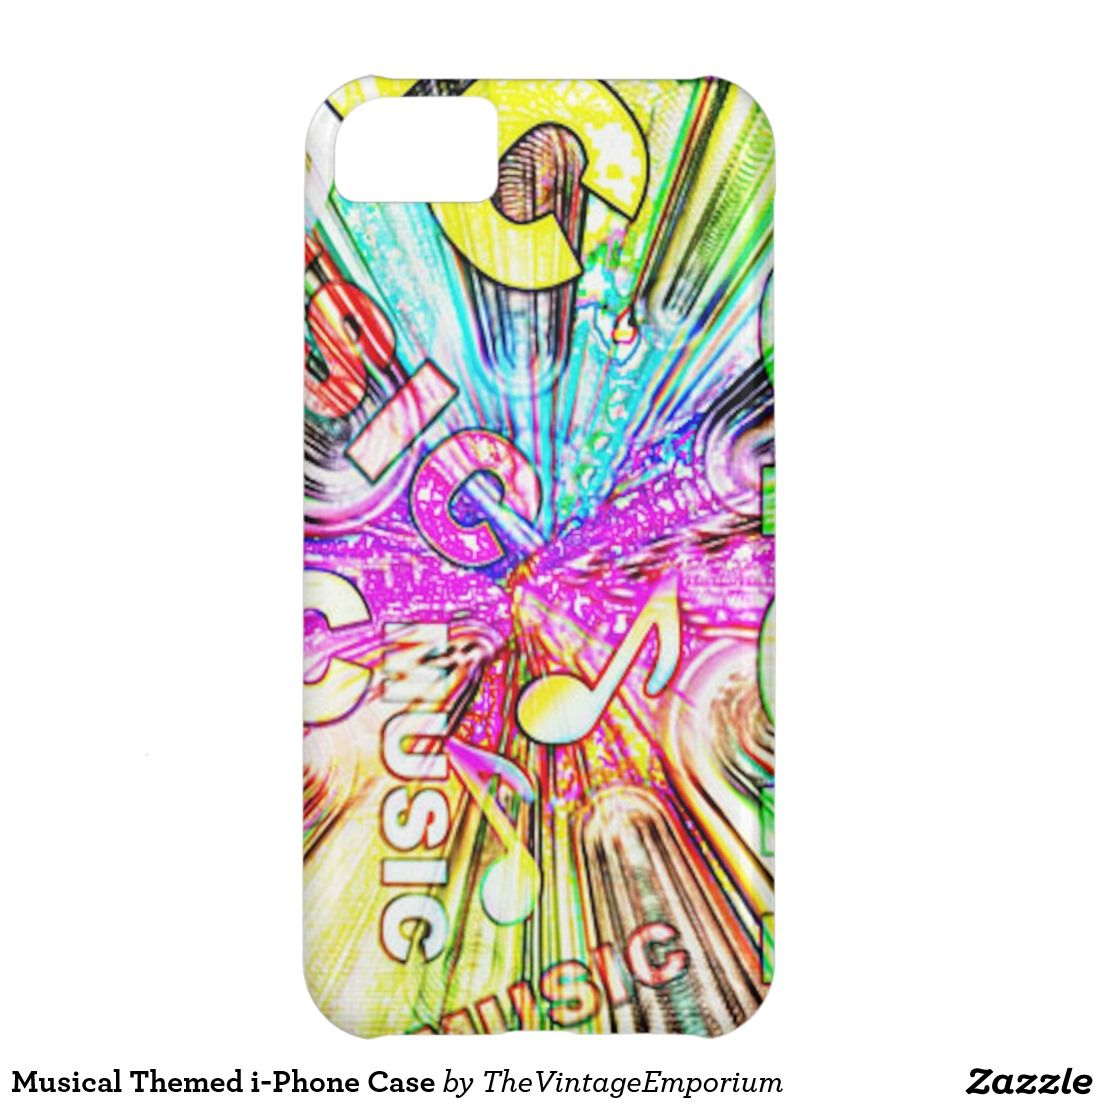 Musical Themed i-Phone Case